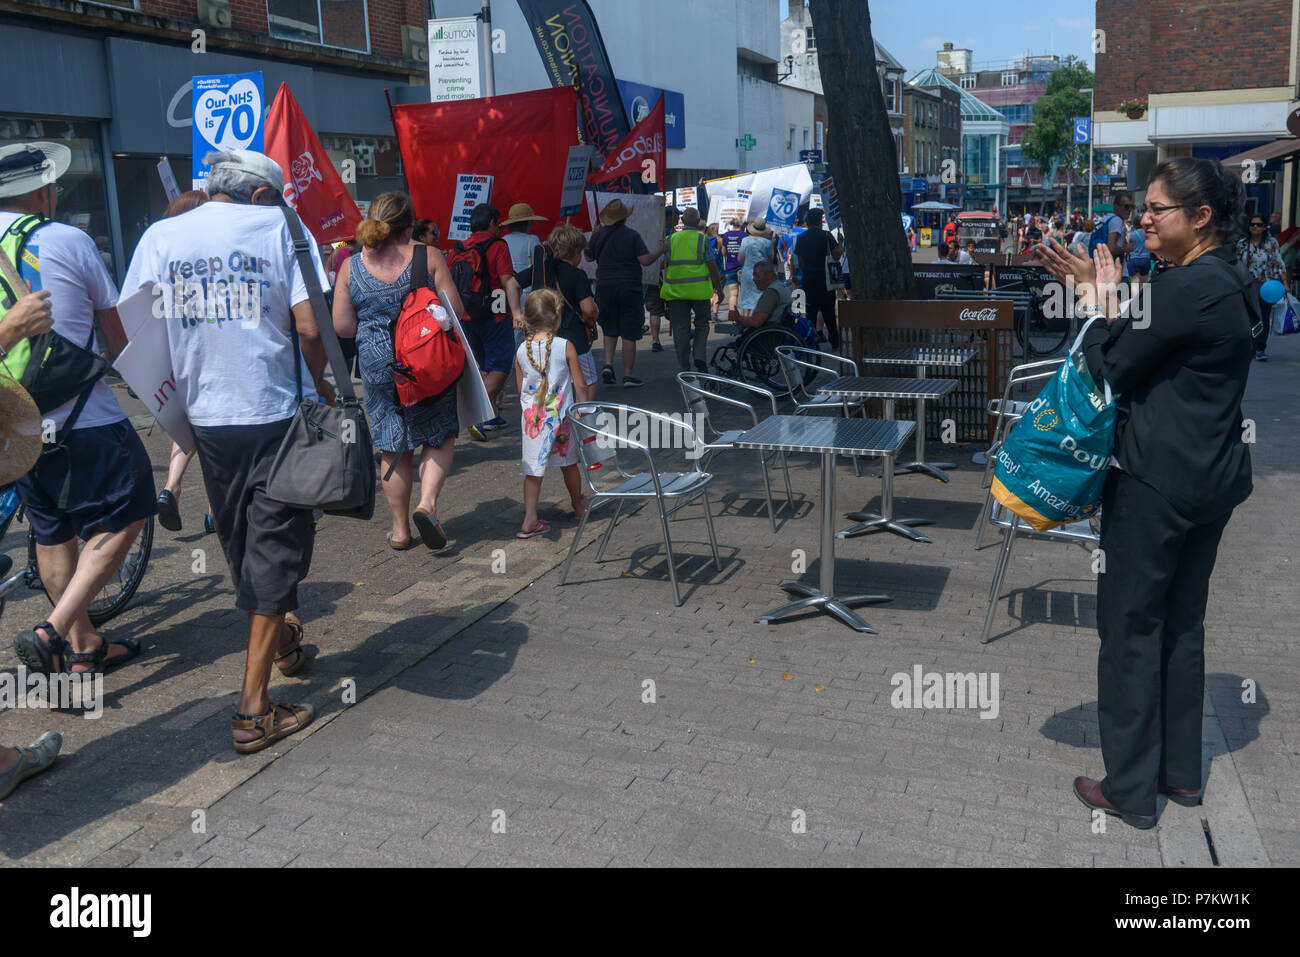 London, UK. 7th July 2018. A woman claps as Keep Our St Helier Hospital (KOSHH) campaigners against the closure of acute facilities at Epsom and St Helier Hospitals in south London celebrate the 70th Birthday of the NHS by marching from Sutton to a rally in front of St Helier Hospital.  The closures are prompted by government cuts which call for huge savings by the trust, and would leave a wi Credit: Peter Marshall/Alamy Live News Stock Photo